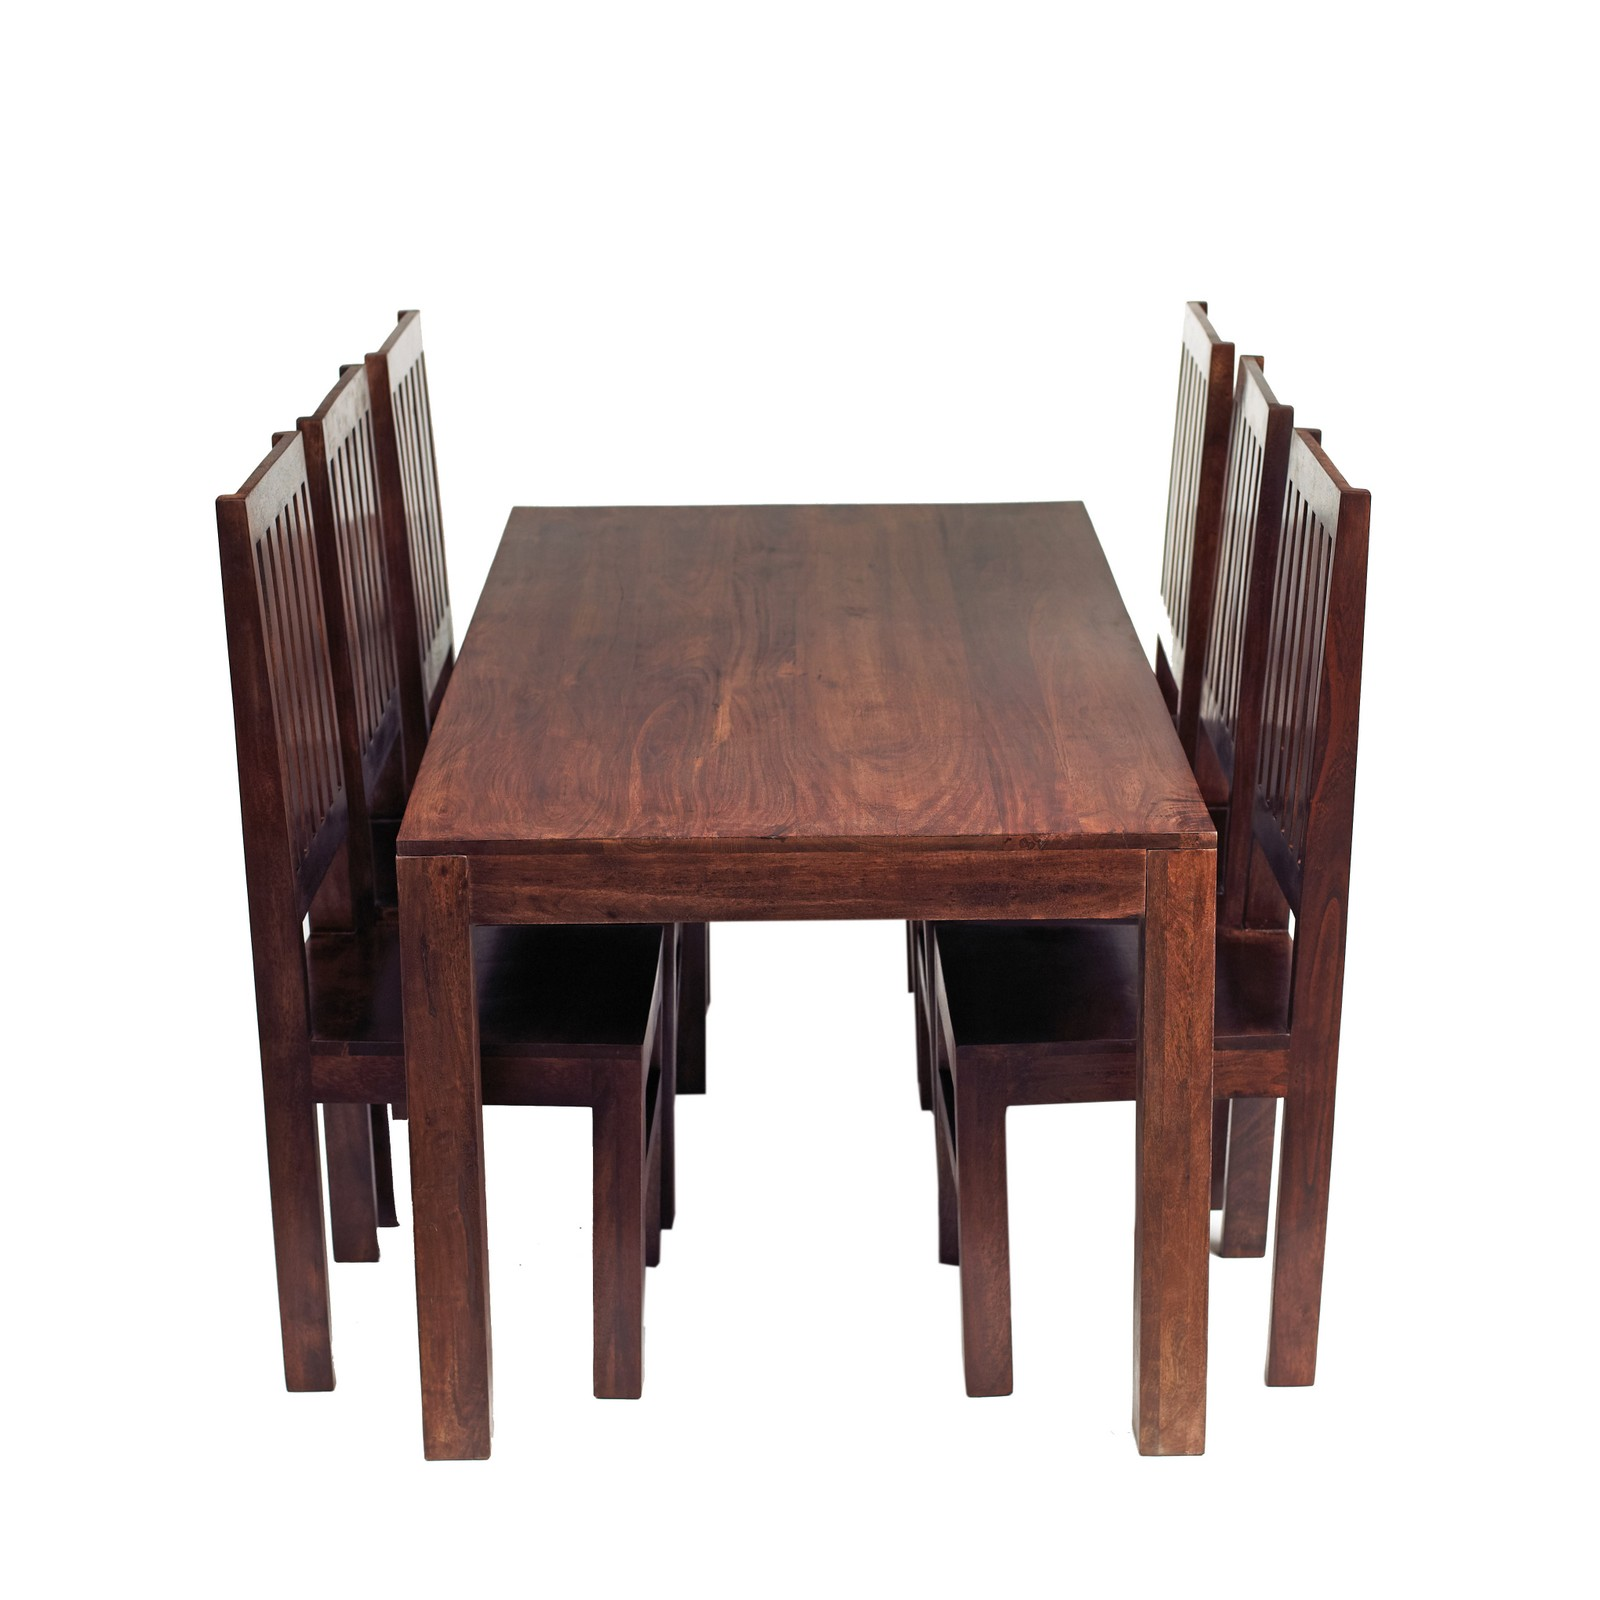 Mango 6 Ft Dining Set With Wooden Chairs Verty Indian Furniture. Full resolution  picture, nominally Width 1600 Height 1600 pixels, picture with #694139.